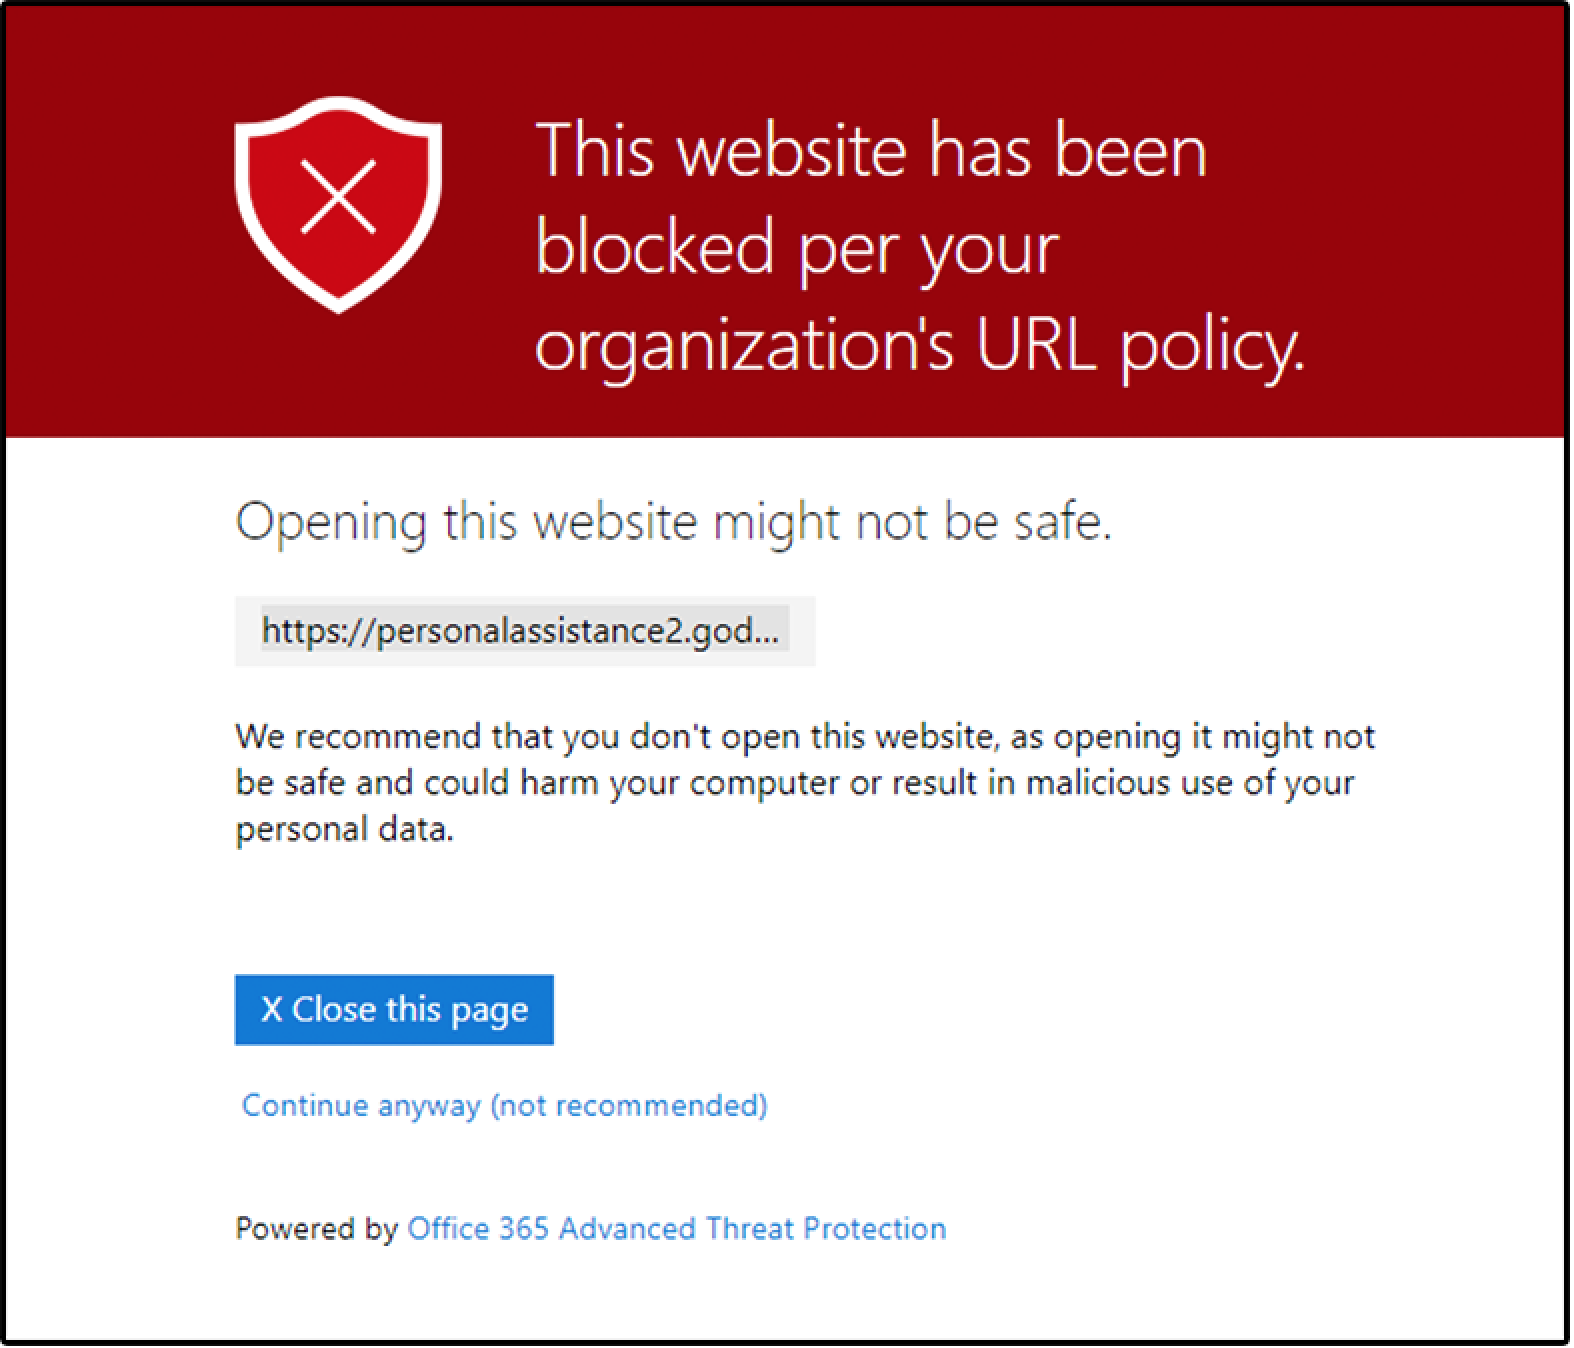 The URL is blocked for your organization. There are several reasons why a URL might be blocked. We recommend that you contact your organization's Office 365 administrator.